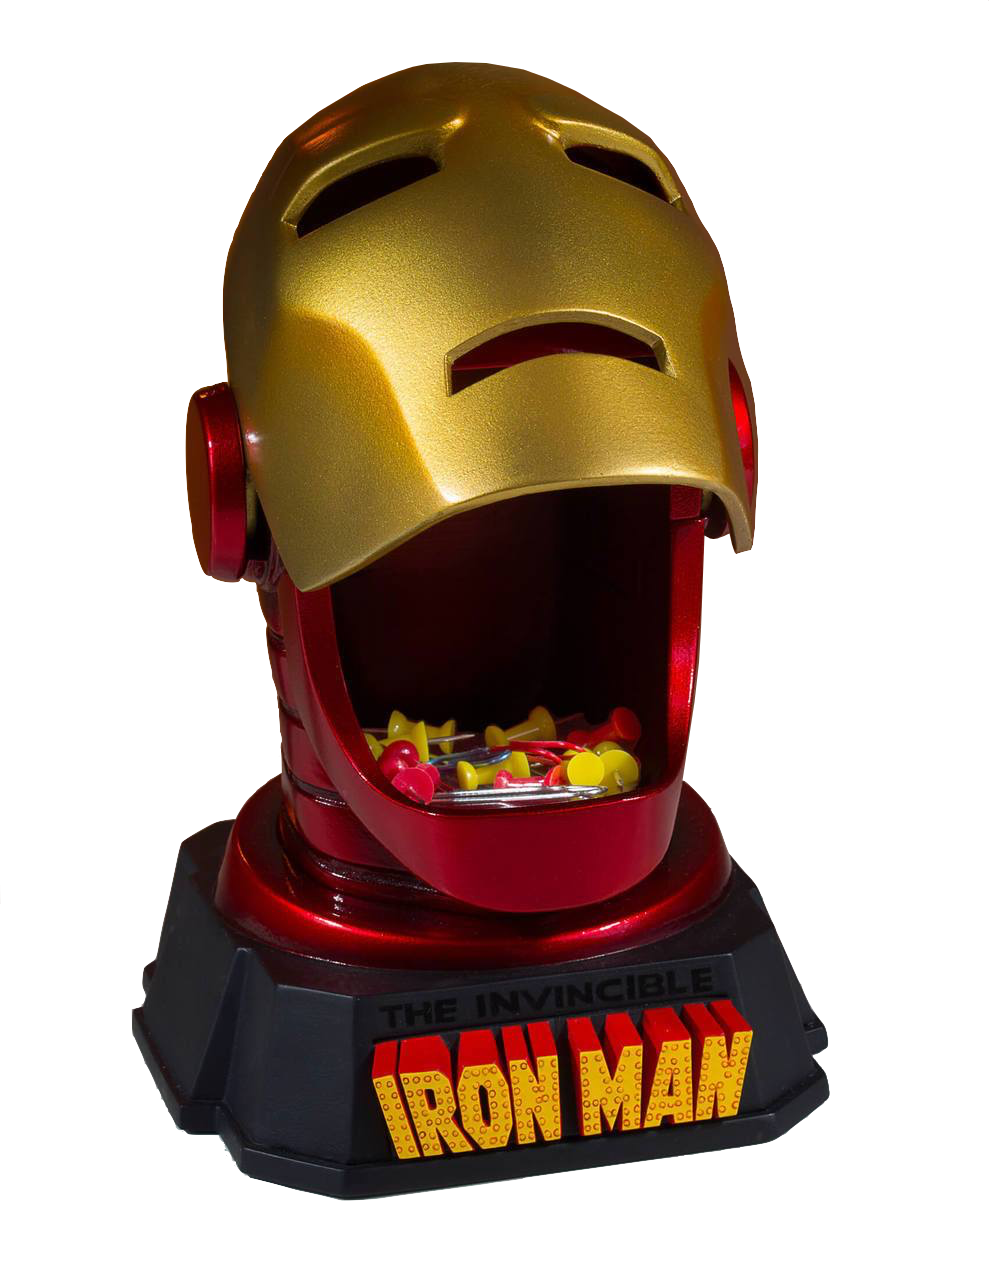 gentle-giant-marvel-ironman-helmet-desk-accessory-toyslife